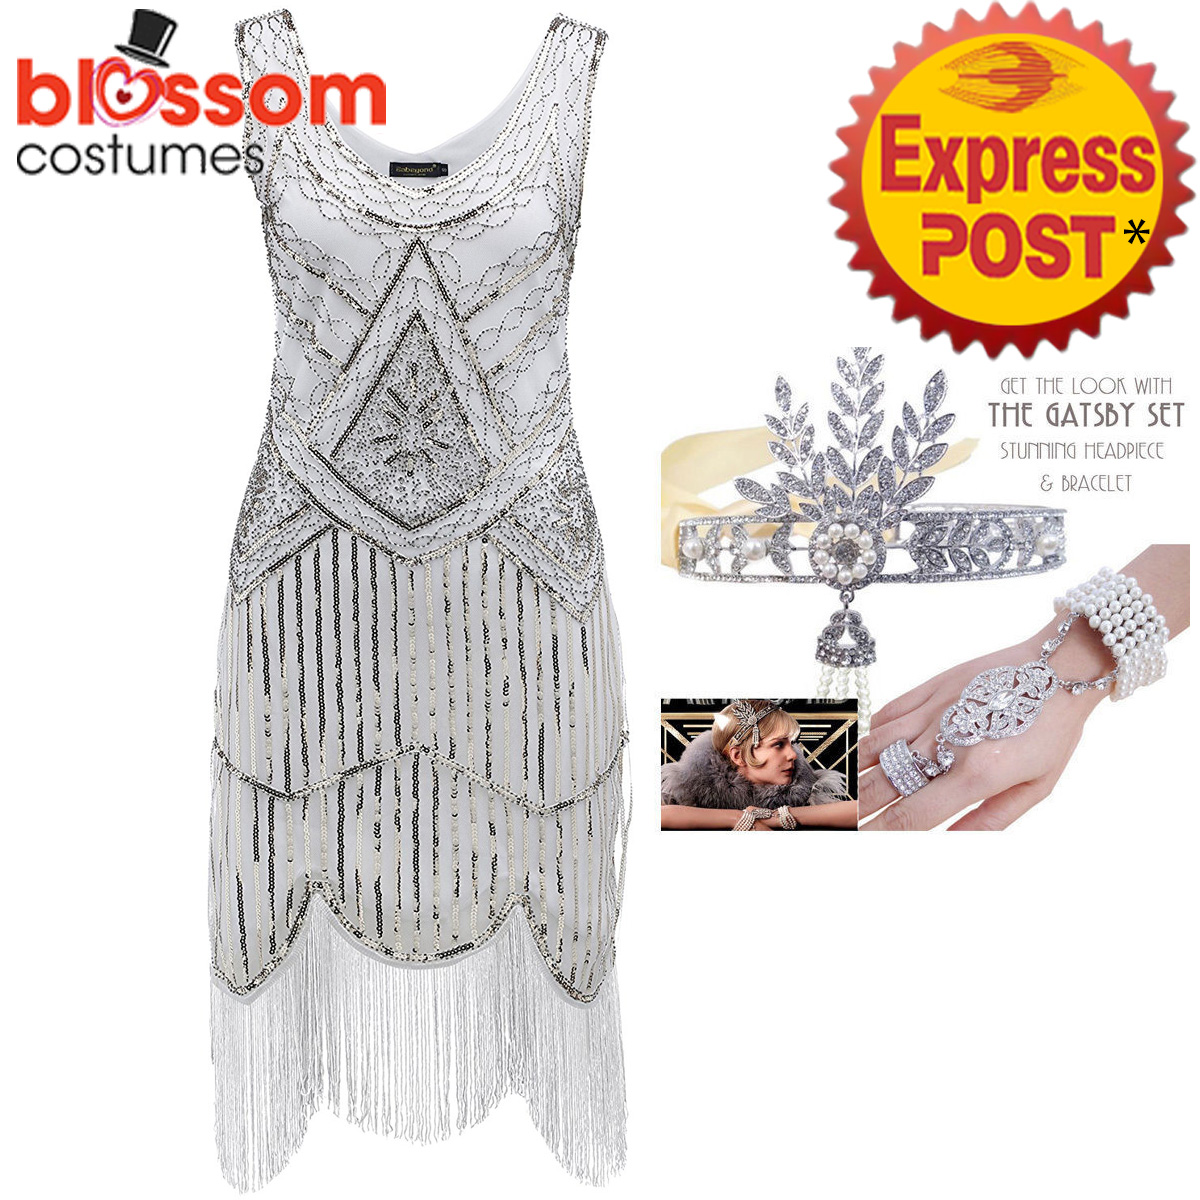 K298-White-Ladies-1920s-Roaring-20s-Flapper-Costume-Sequin-Gatsby-Outfit-Dress